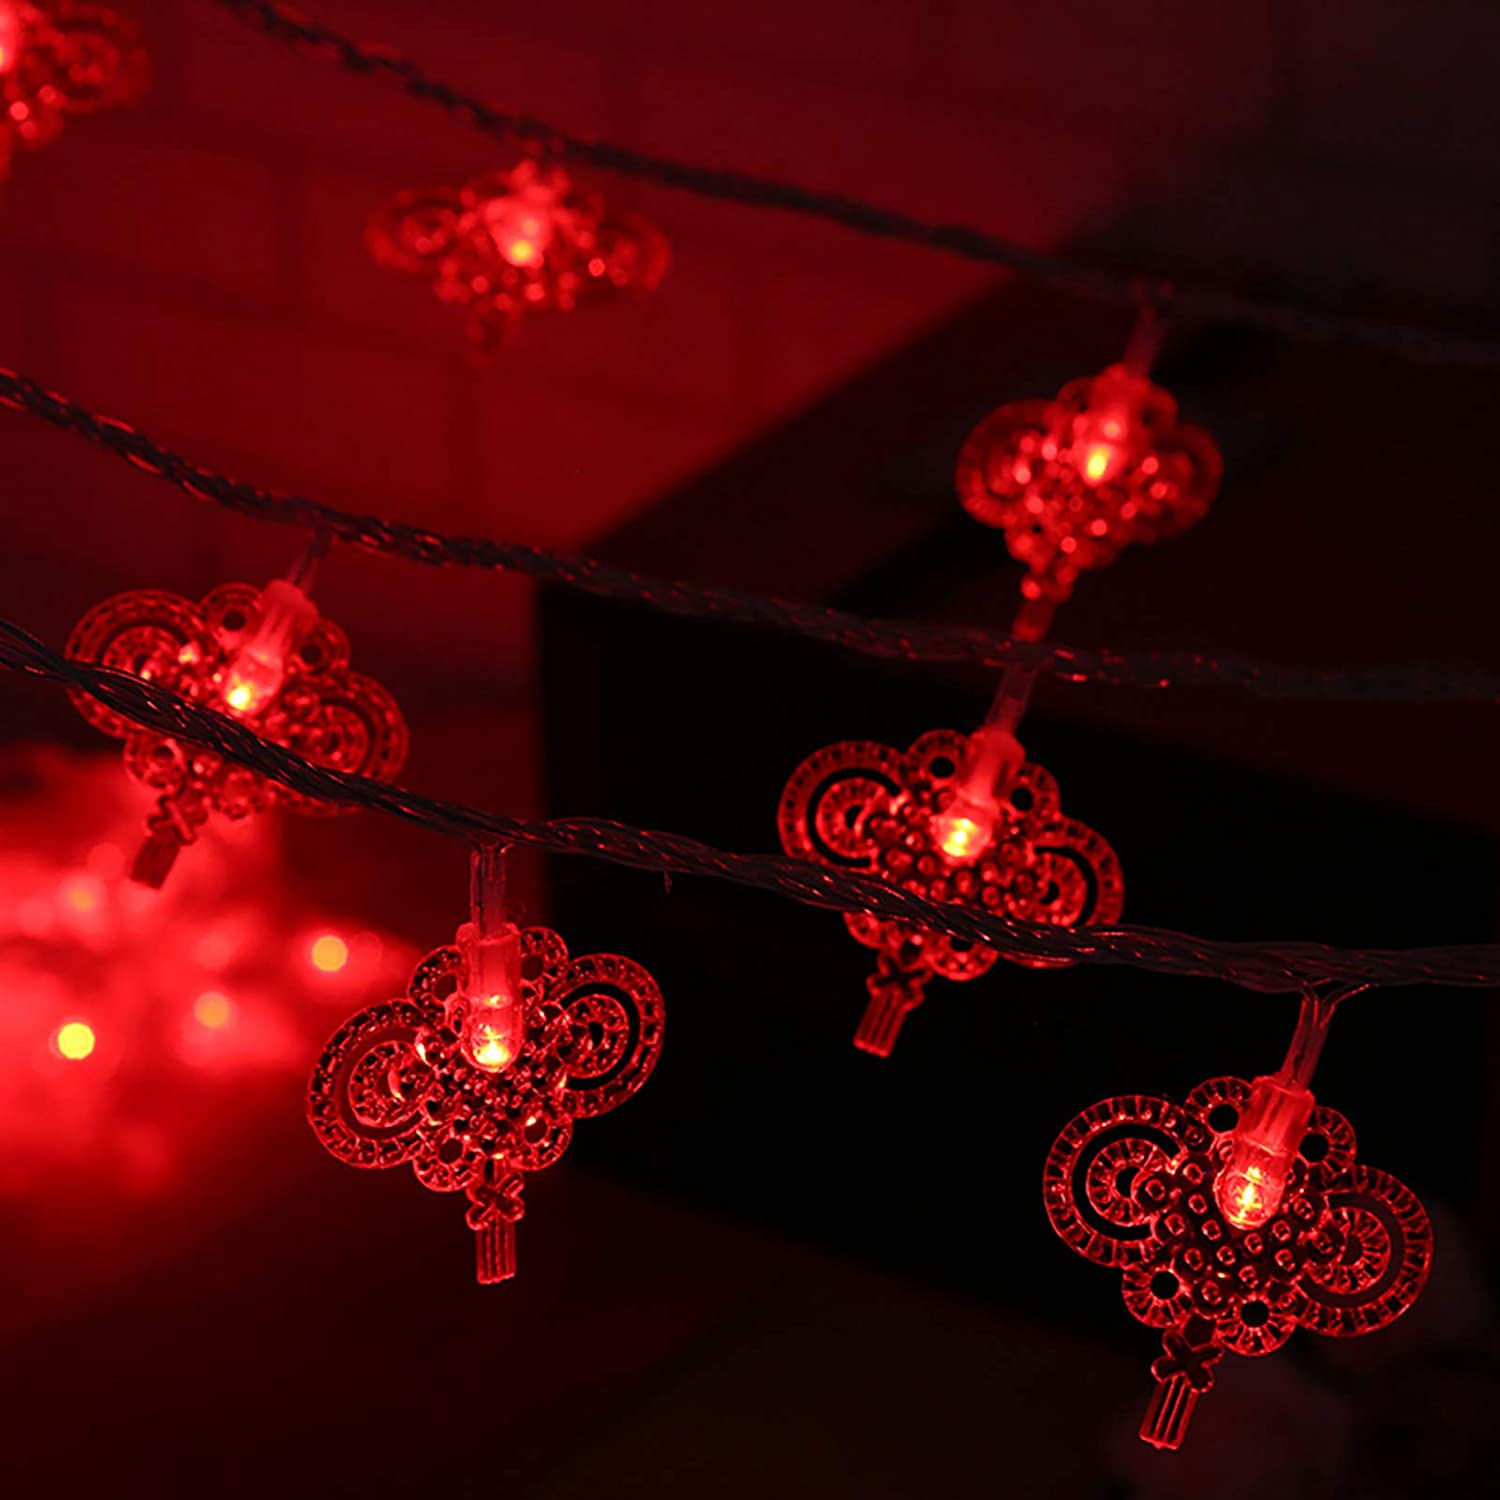 Red New Year String Lights,Christmas Led Curtain String Light,Home Decorative Fairy Lights for Bedroom Party Wedding Garden Halloween Wall Decorations